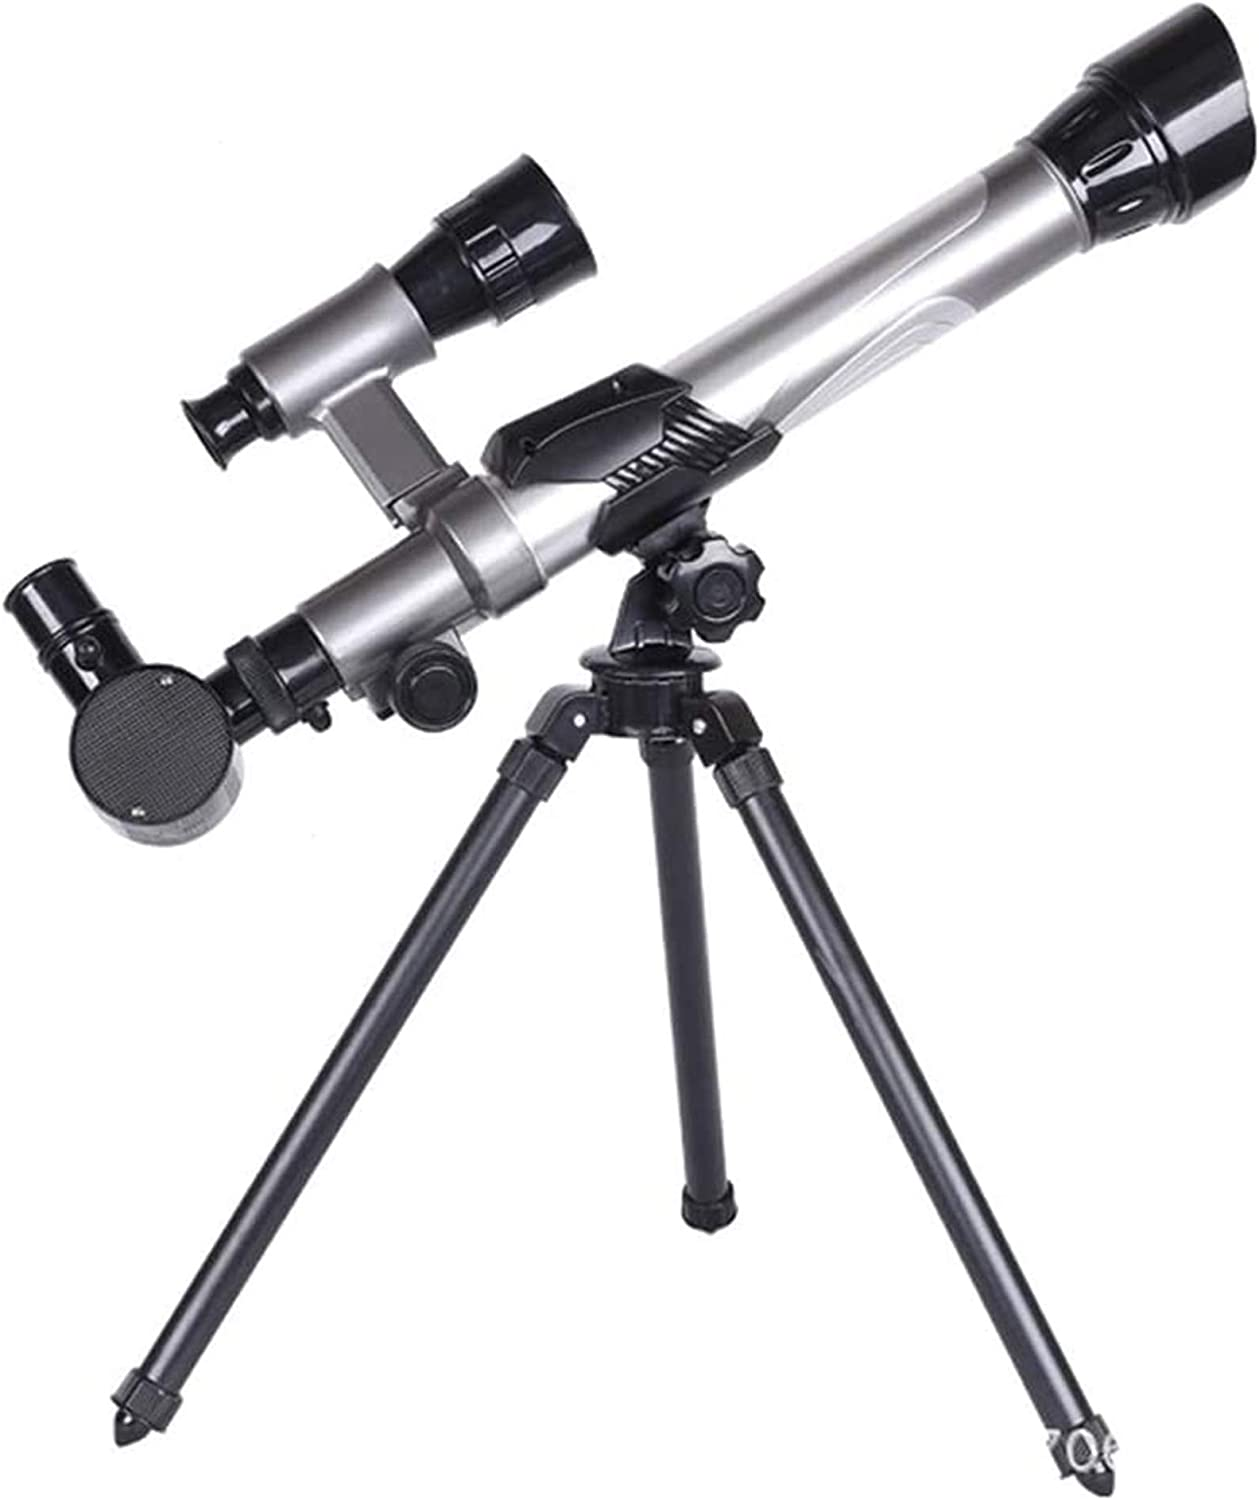 ZHEYANG Telescope for Kids Acc Memphis Special sale item Mall Beginners Astronomy